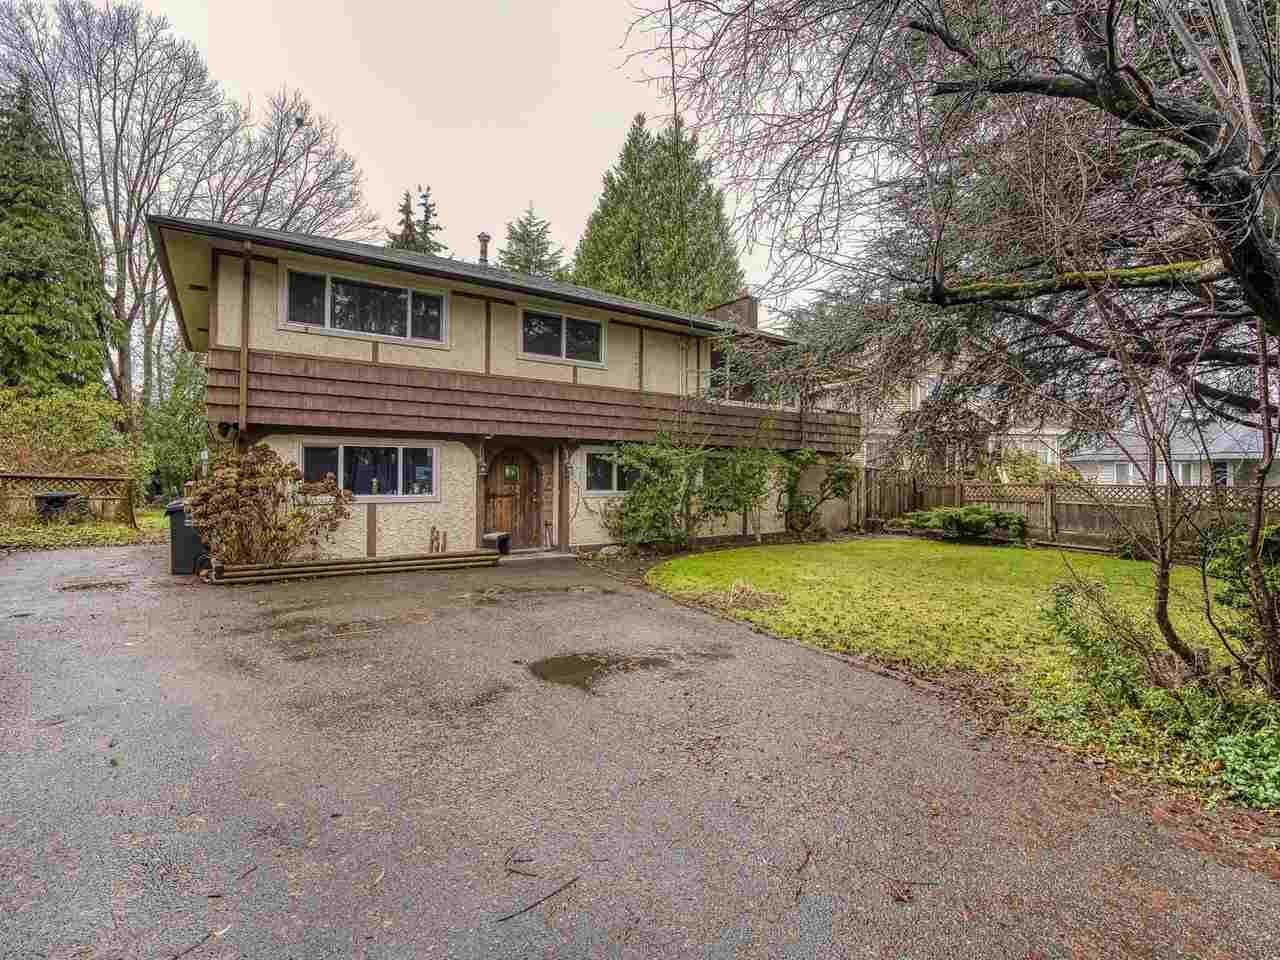 """Fantastic Opportunity! Rarely available, Massive 12,647 square foot lot in desirable neighbourhood - build a Mansion over 5,000 sq ft! NOT ON a """"T"""" (Please see Photo 3 in pictures) and with wide frontage that would allow a very nice new home design. Very Good Value - Priced below Assessed Value! Currently tenant occupied for $3,000 and tenants would like to stay which makes this a good investment opportunity. House has had updates done - newer windows etc. and is in solid condition. With Covid Restrictions house is difficult to view, but please review photos, floor plan and lot plan, then drive by. **FLOOR PLAN in Documents***Do not enter the backyard unless making appointment with Listing Agent first. Offers will have to be """"Subject to Viewing"""". Thanks"""